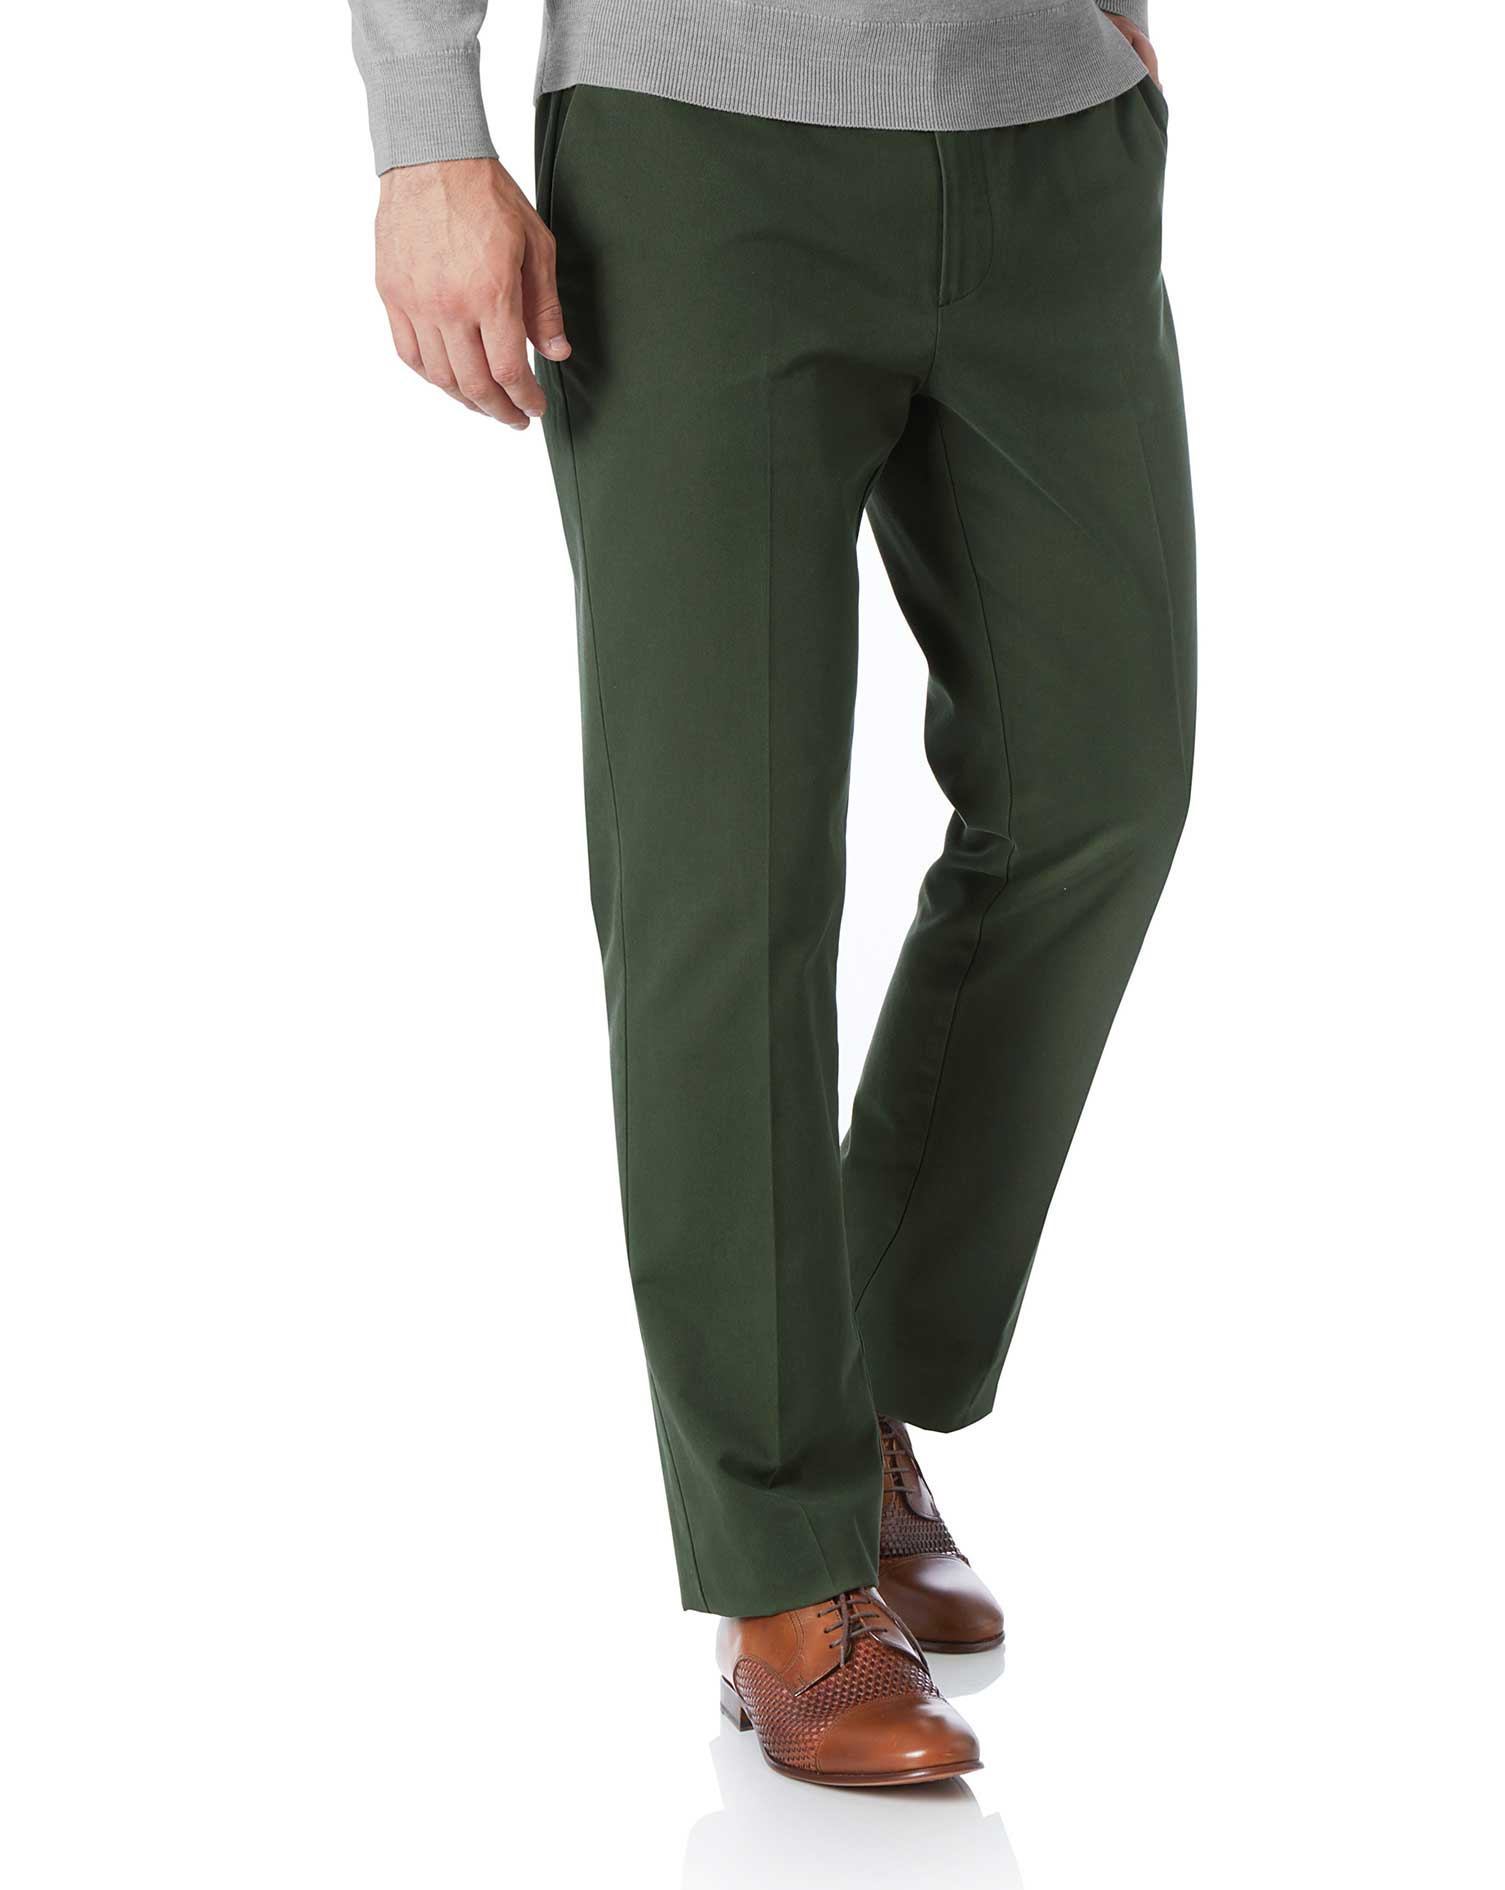 Dark Green Slim Fit Flat Front Non-Iron Cotton Chino Trousers Size W34 L29 by Charles Tyrwhitt